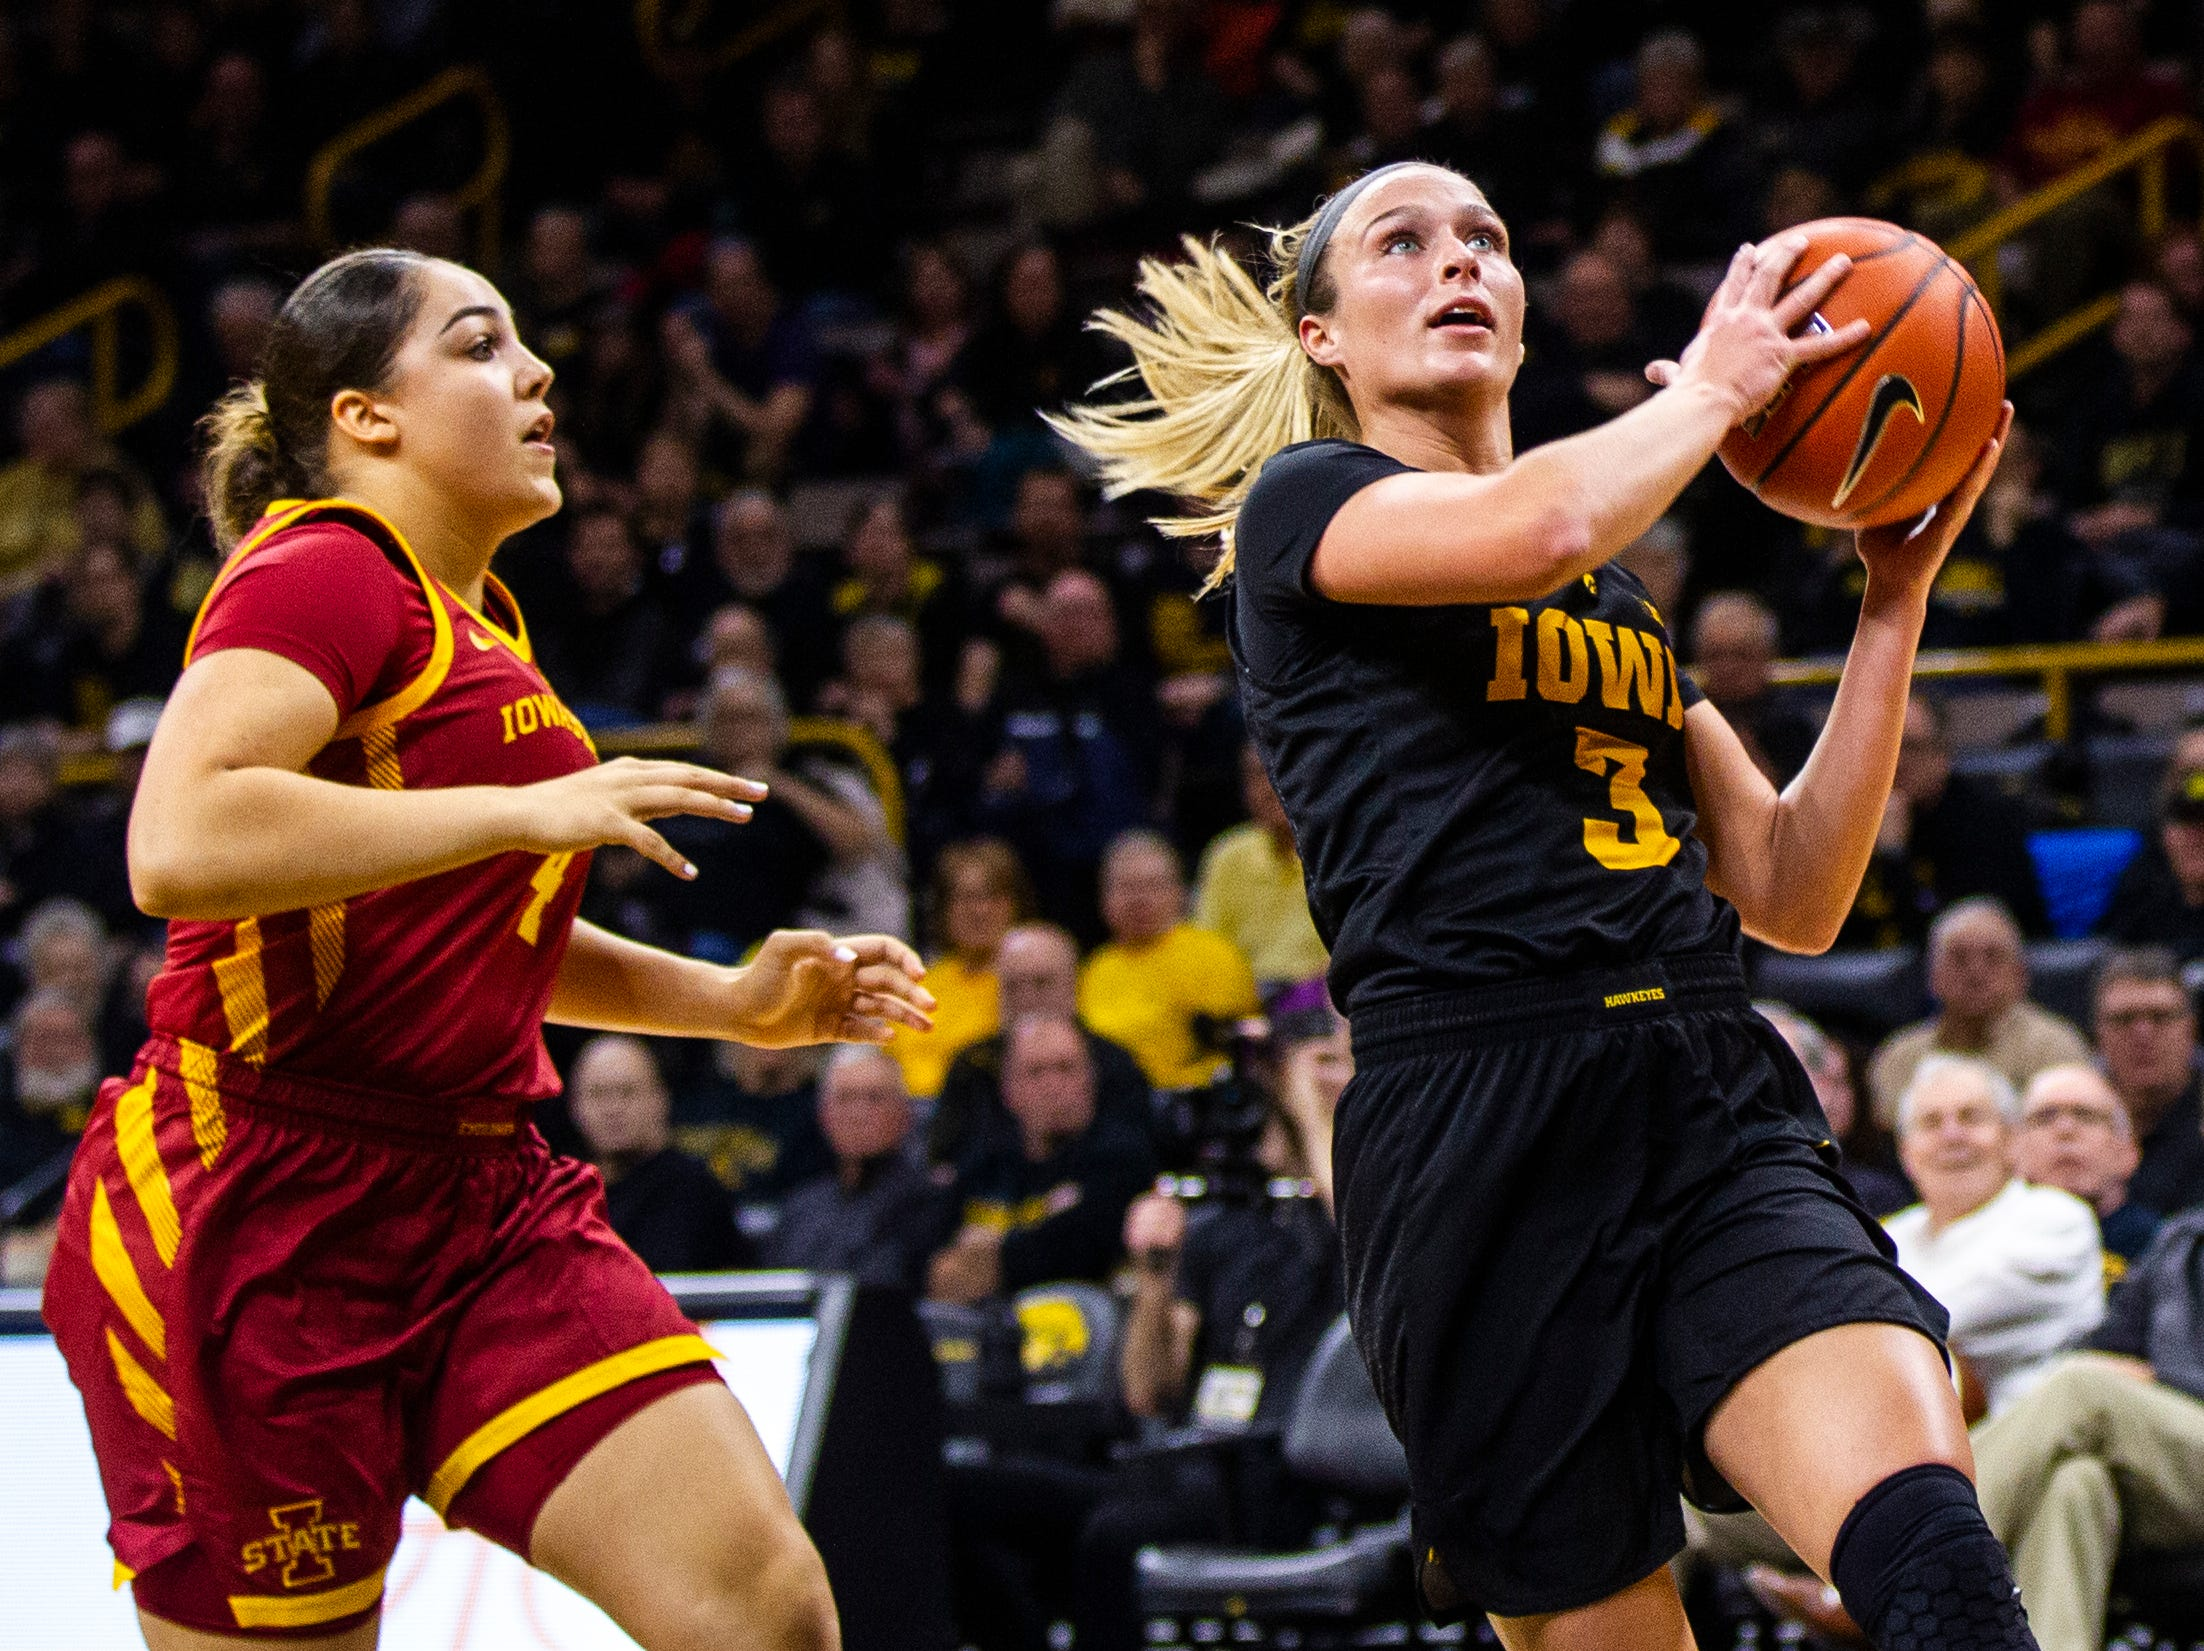 Iowa guard Makenzie Meyer (3) attempts a layup during a Cy-Hawk series NCAA women's basketball game on Wednesday, Dec. 5, 2018, at Carver-Hawkeye Arena in Iowa City.